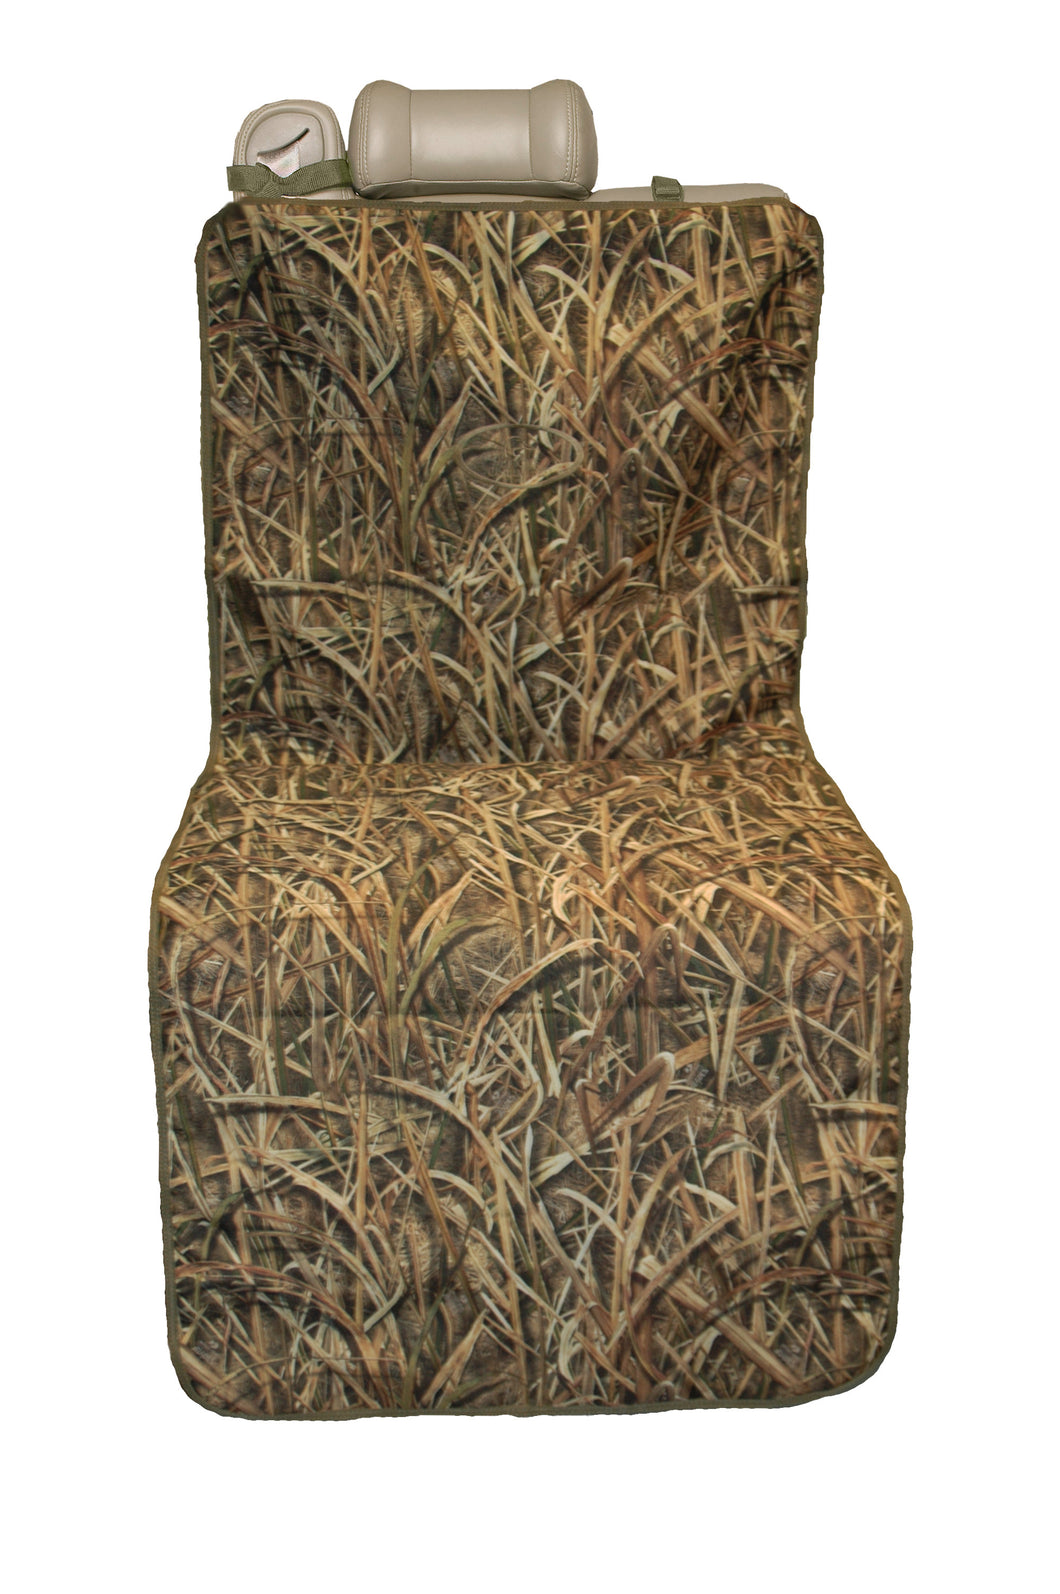 Shotgun Single Seat Cover- Ducks Unlimited Edition